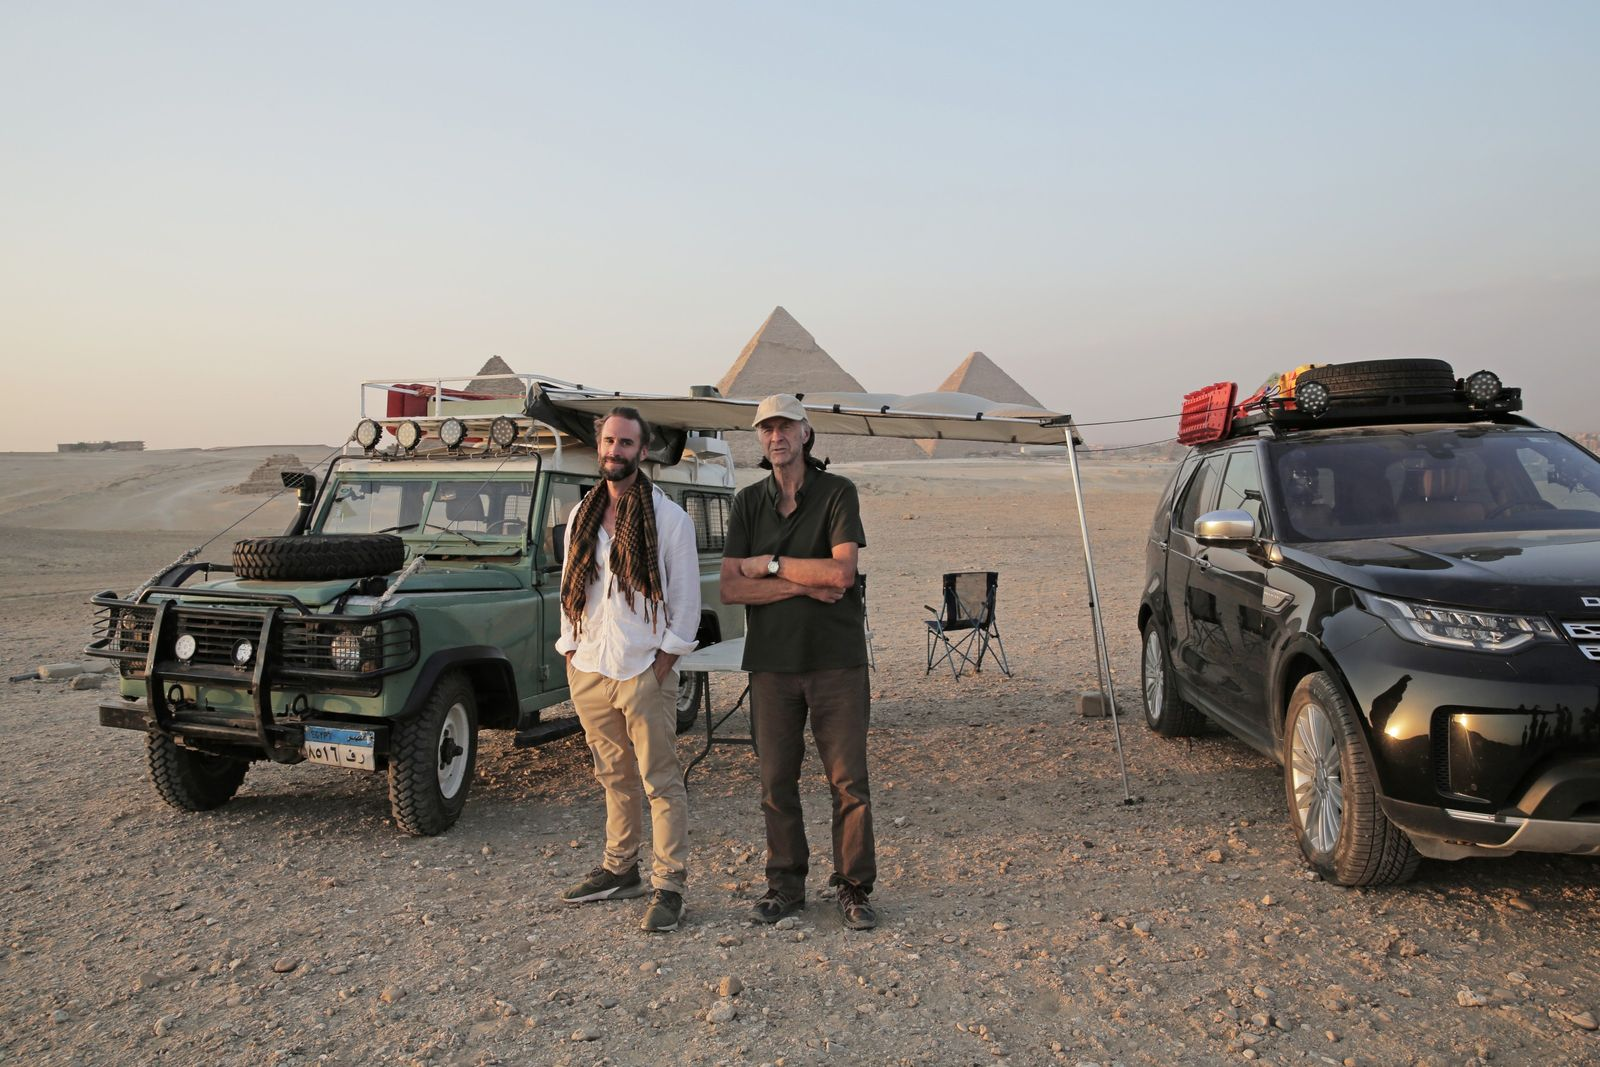 """The Pyramids of Giza, outside Cairo. Joe says: """"Ran had to ignore the pyramids [on the ..."""